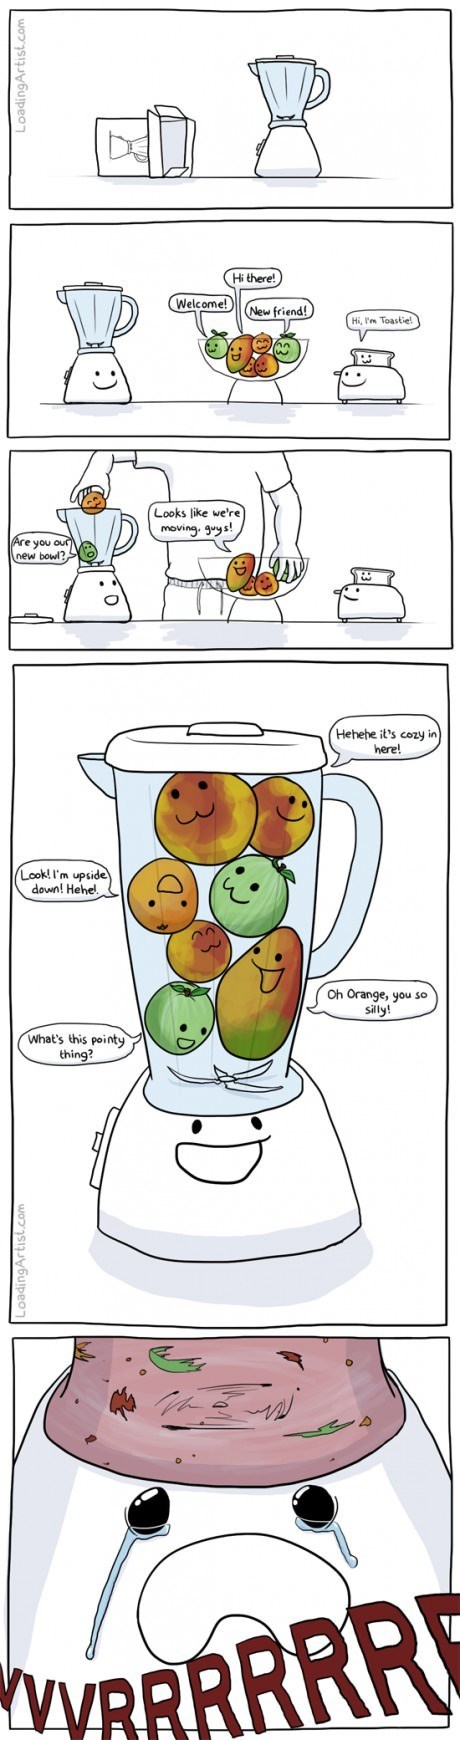 blenders,fruit,kitchen,web comics